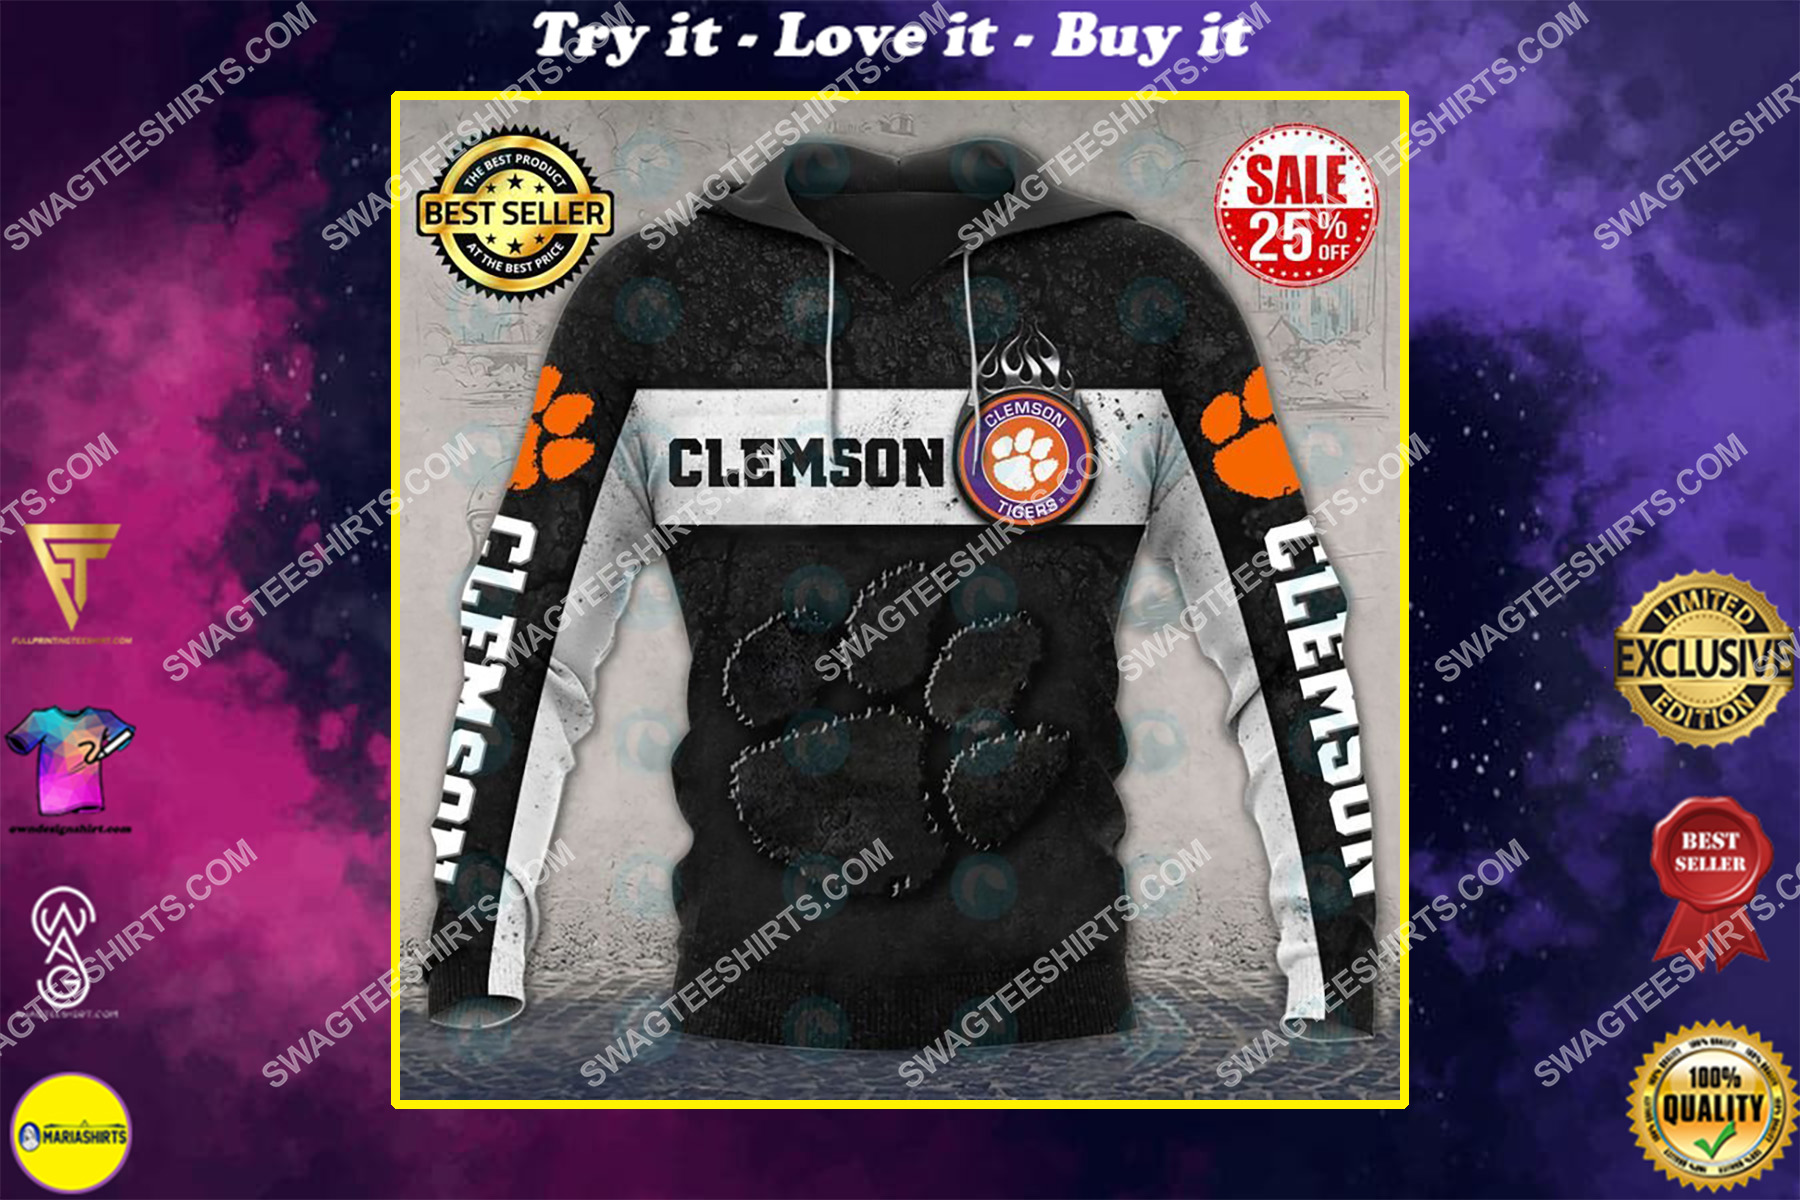 the clemson tigers football team all over printed shirt